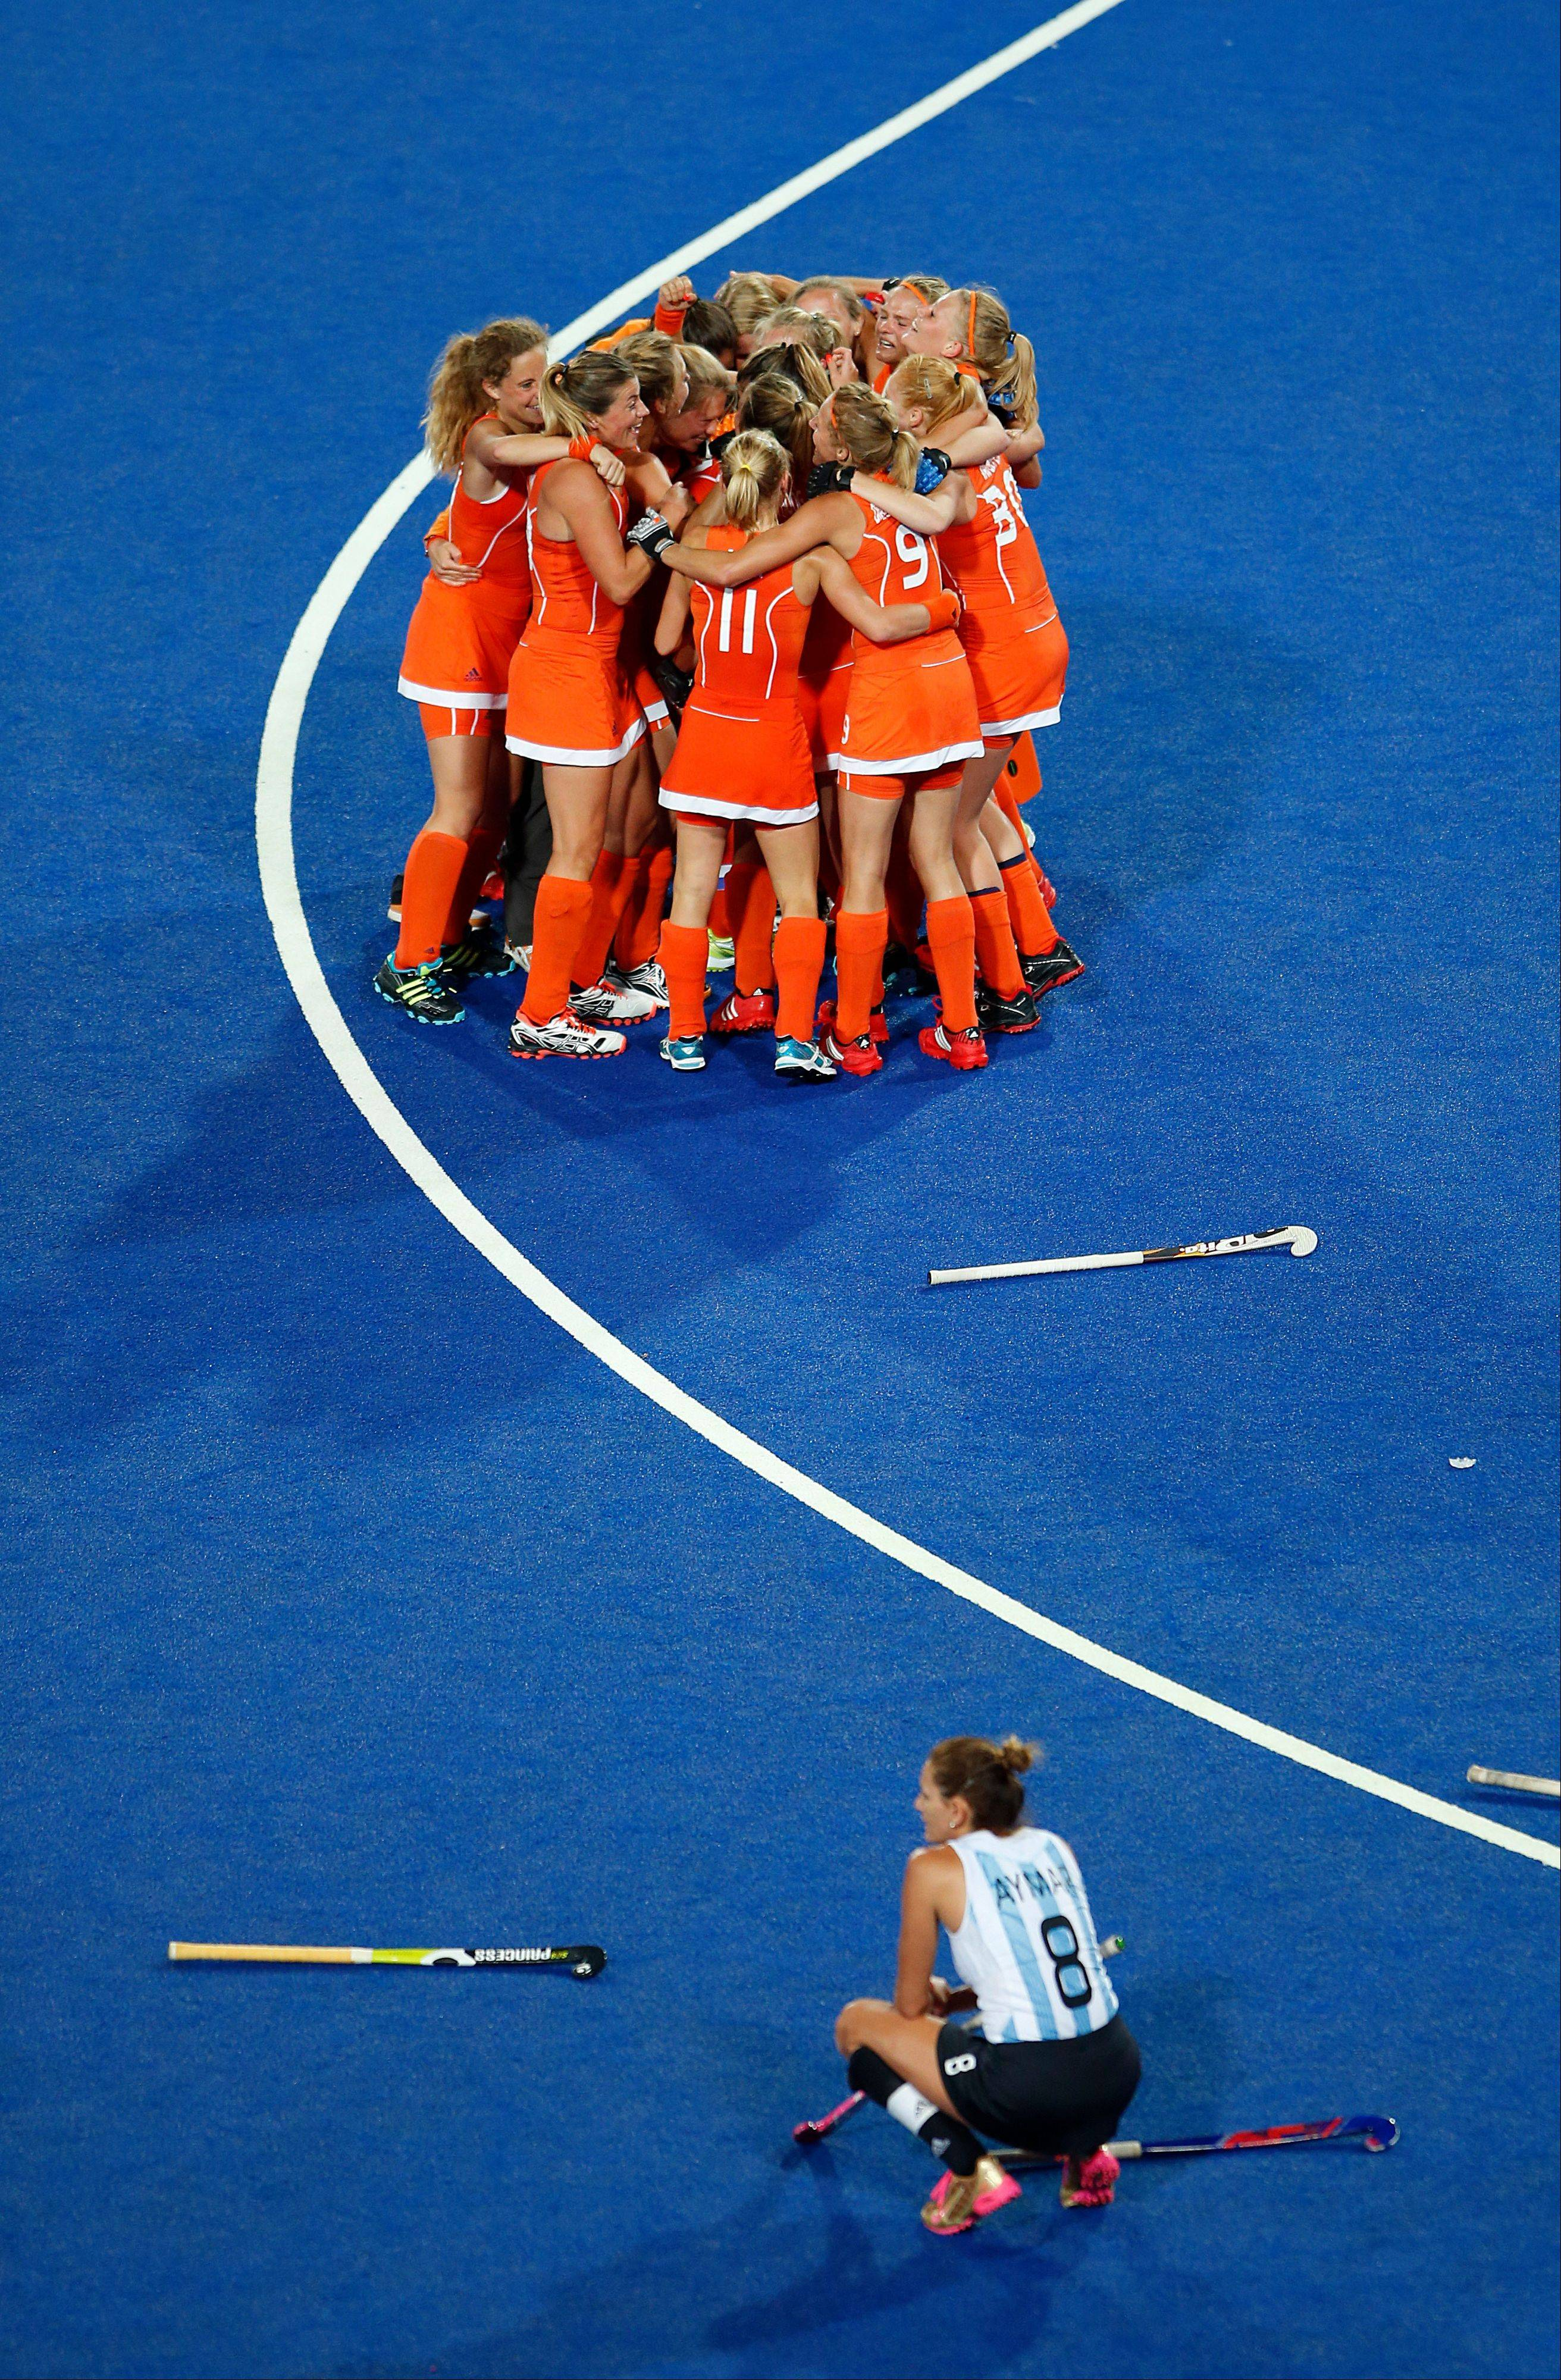 Argentina's Luciana-Aymar, bottom, looks on as Netherlands hockey players celebrate their win in a women's hockey gold medal match at the 2012 Summer Olympics, London, Friday, Aug. 10, 2012.